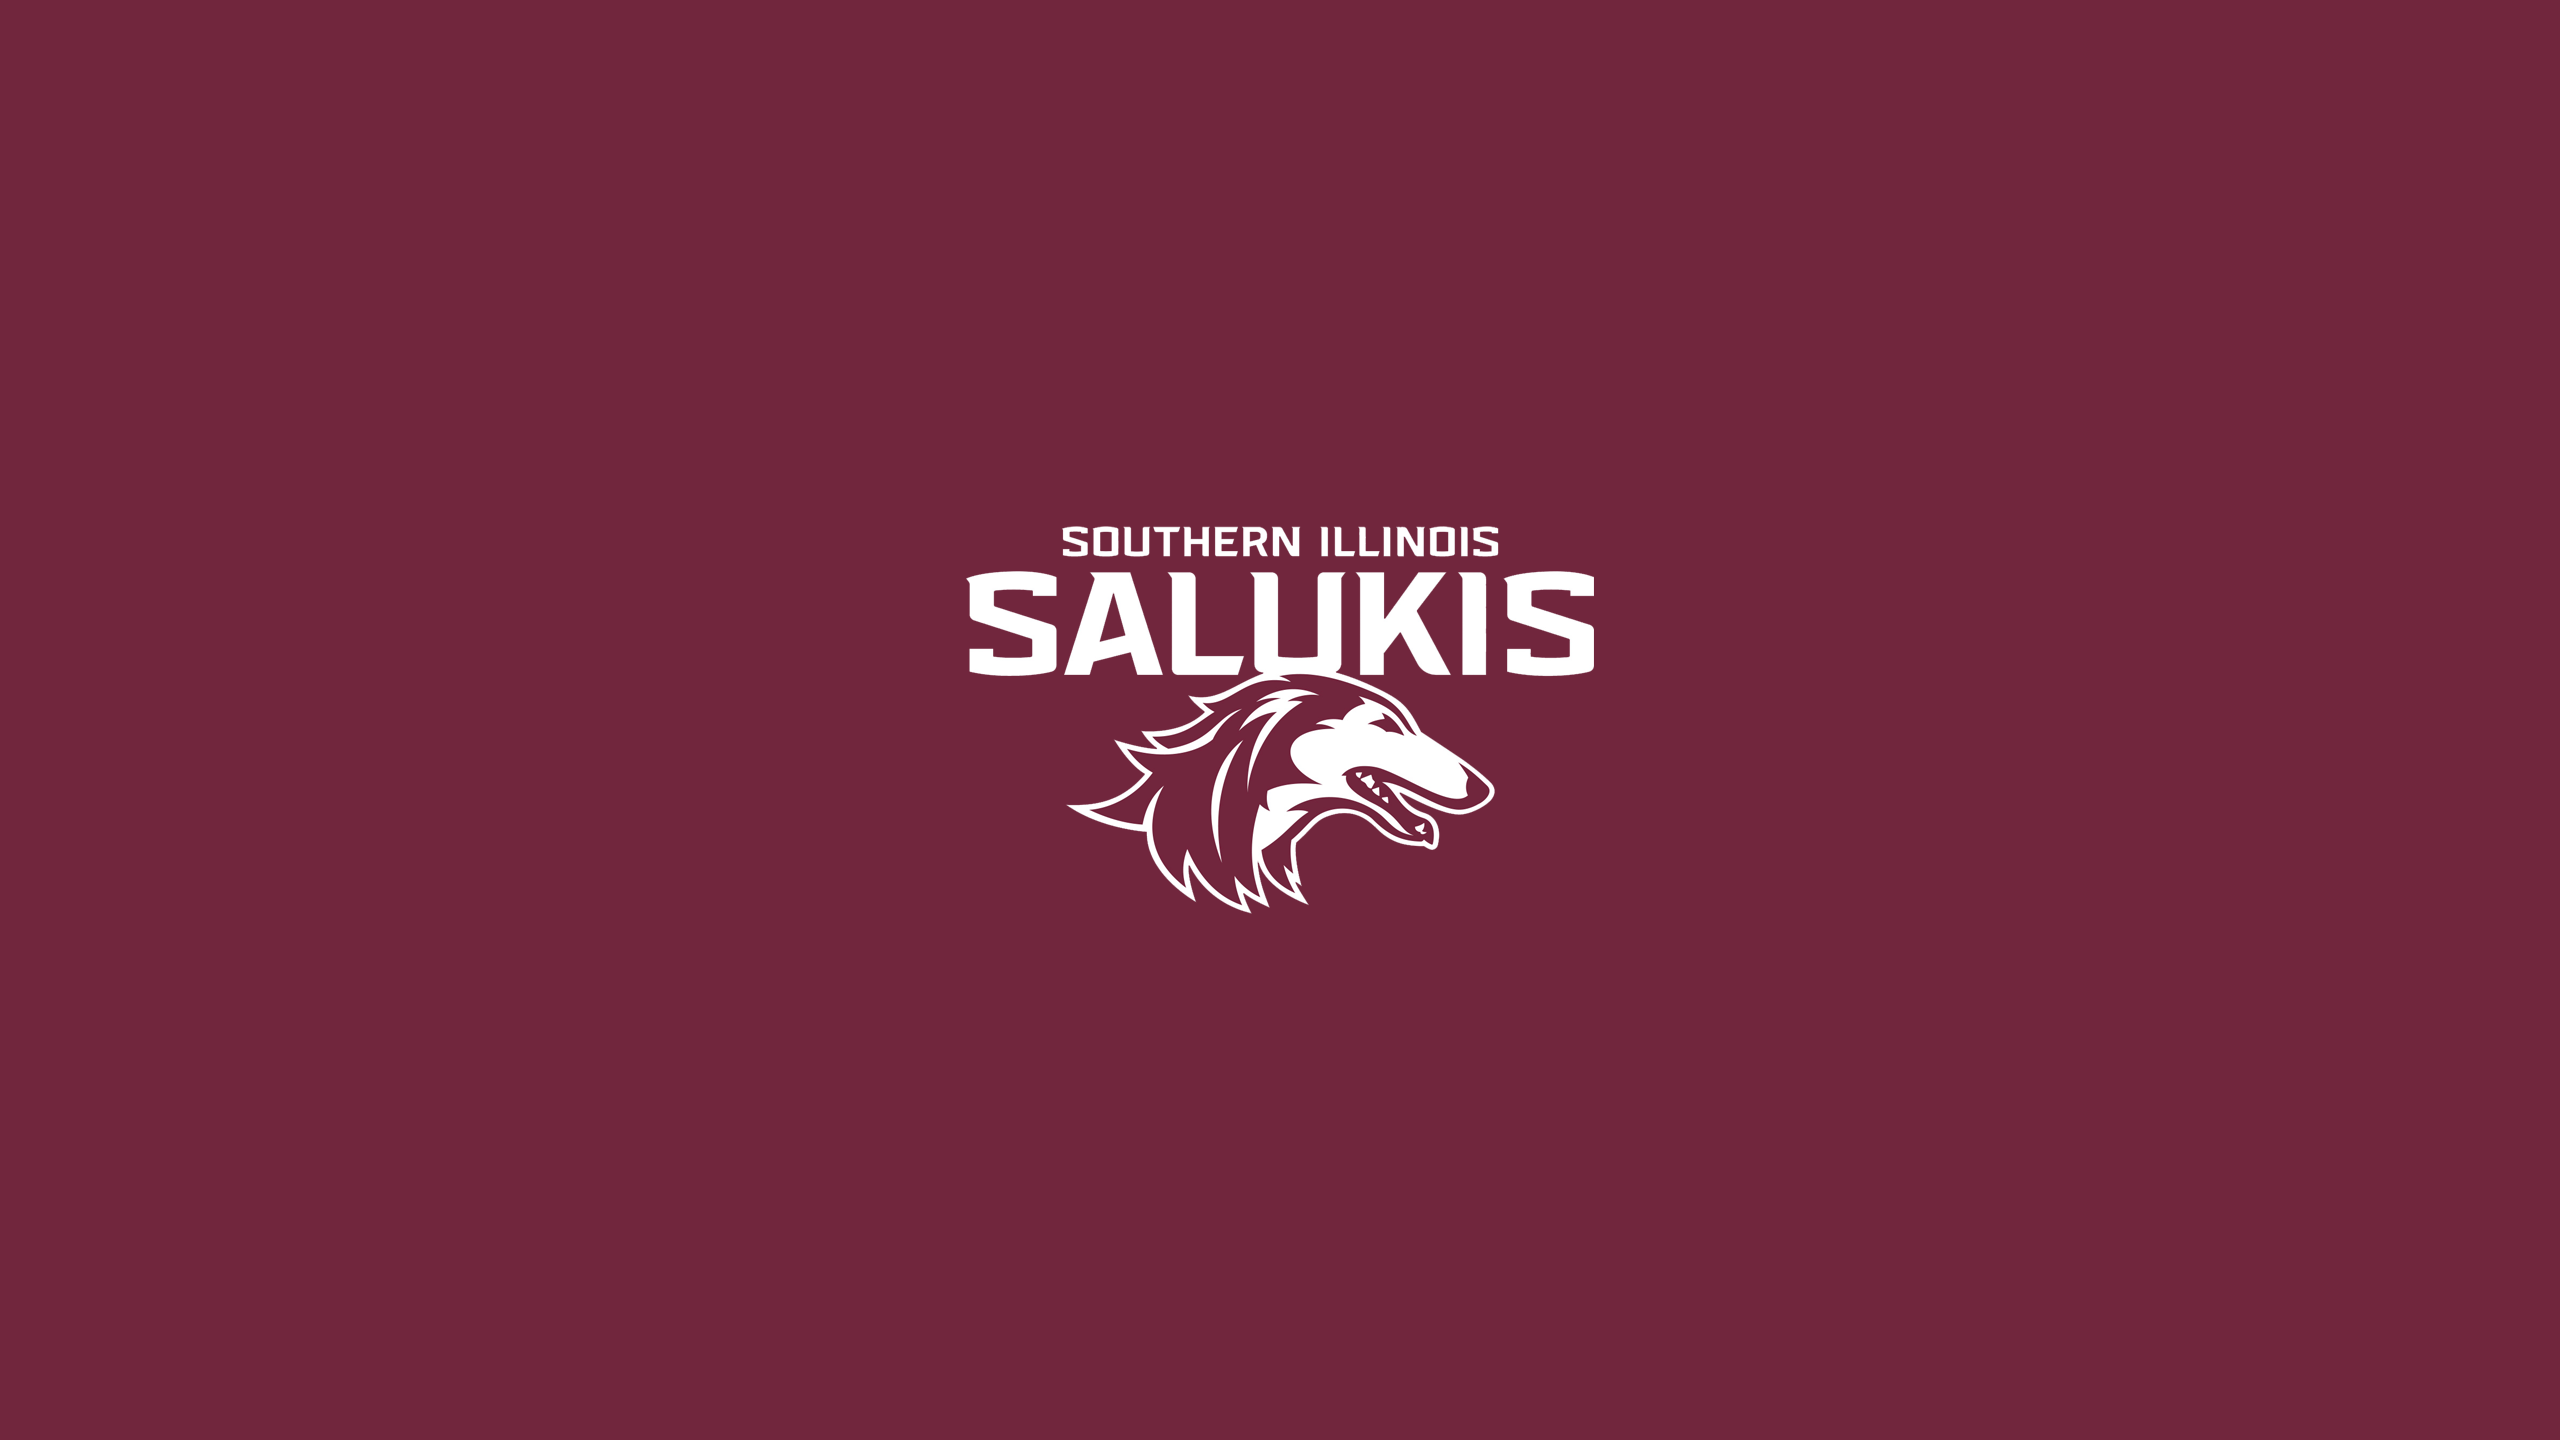 Southern Illinois University Salukis